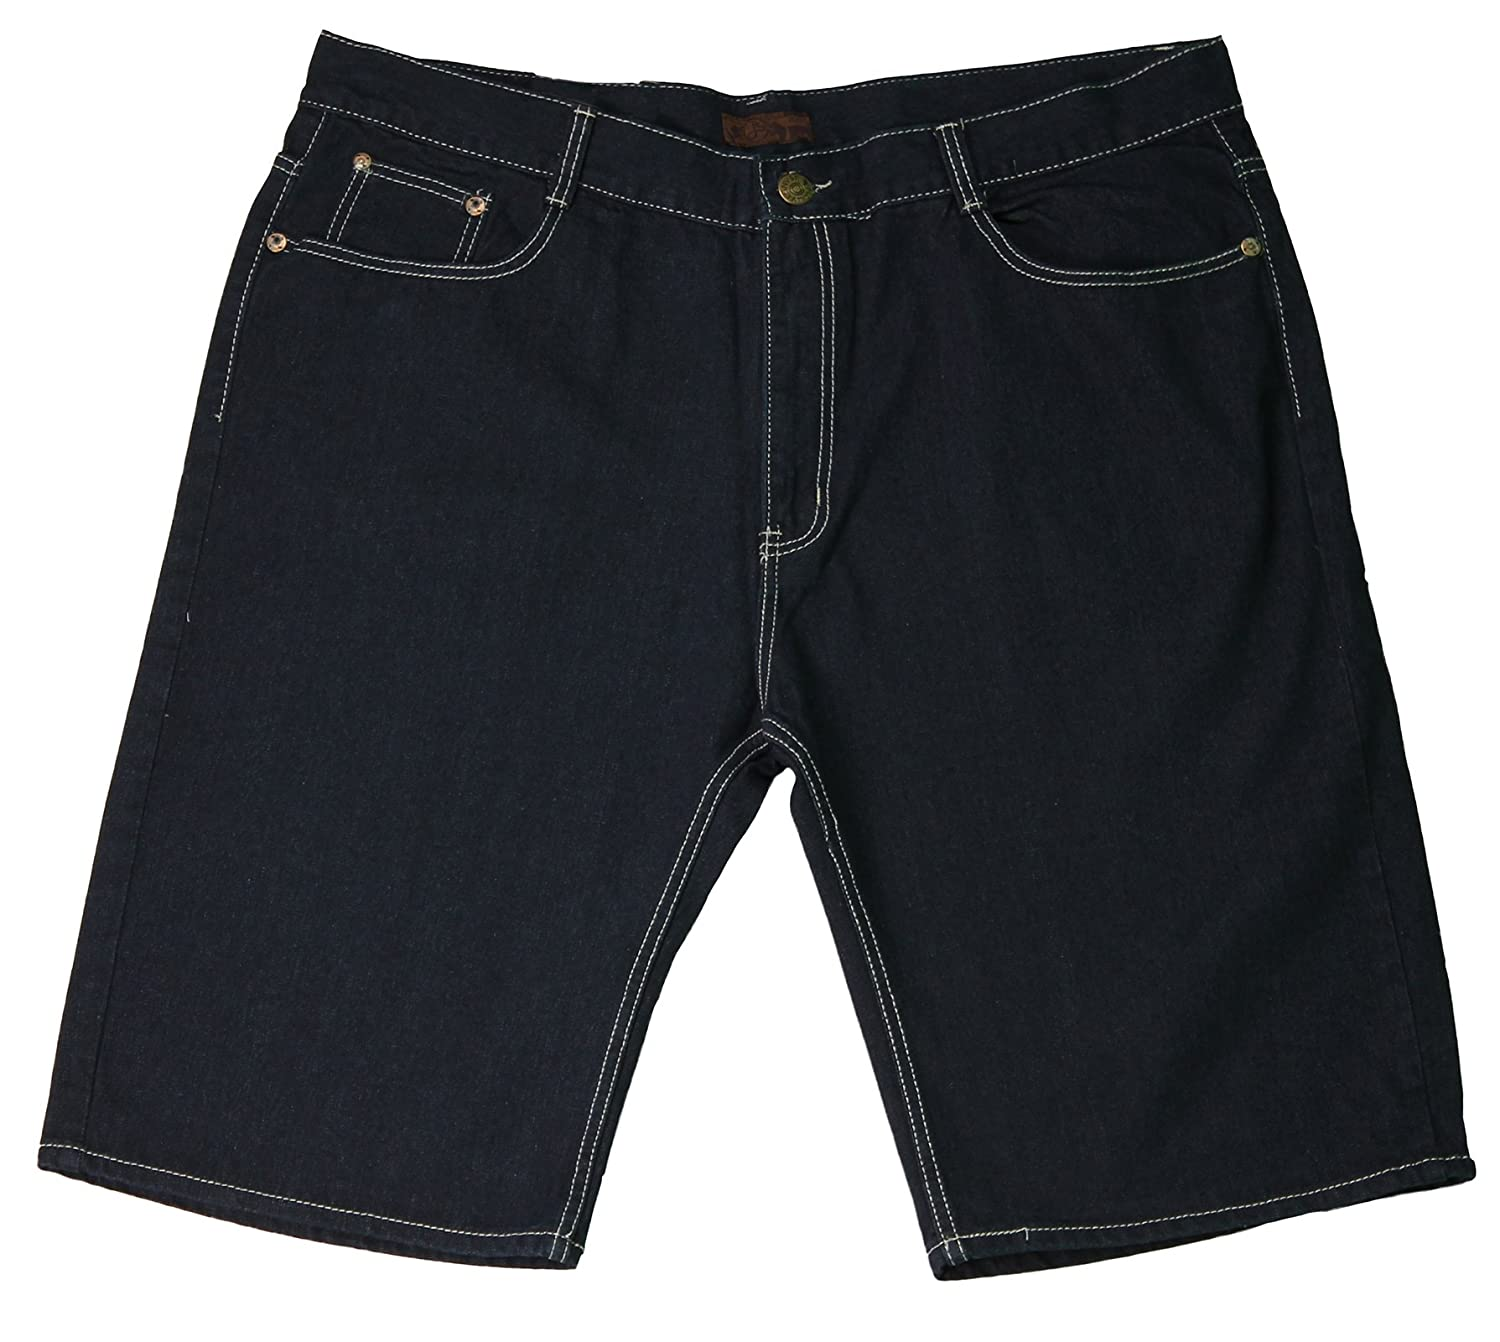 Jean Station Big Men's Denim 5-Pocket Fashion Shorts JSS13006X